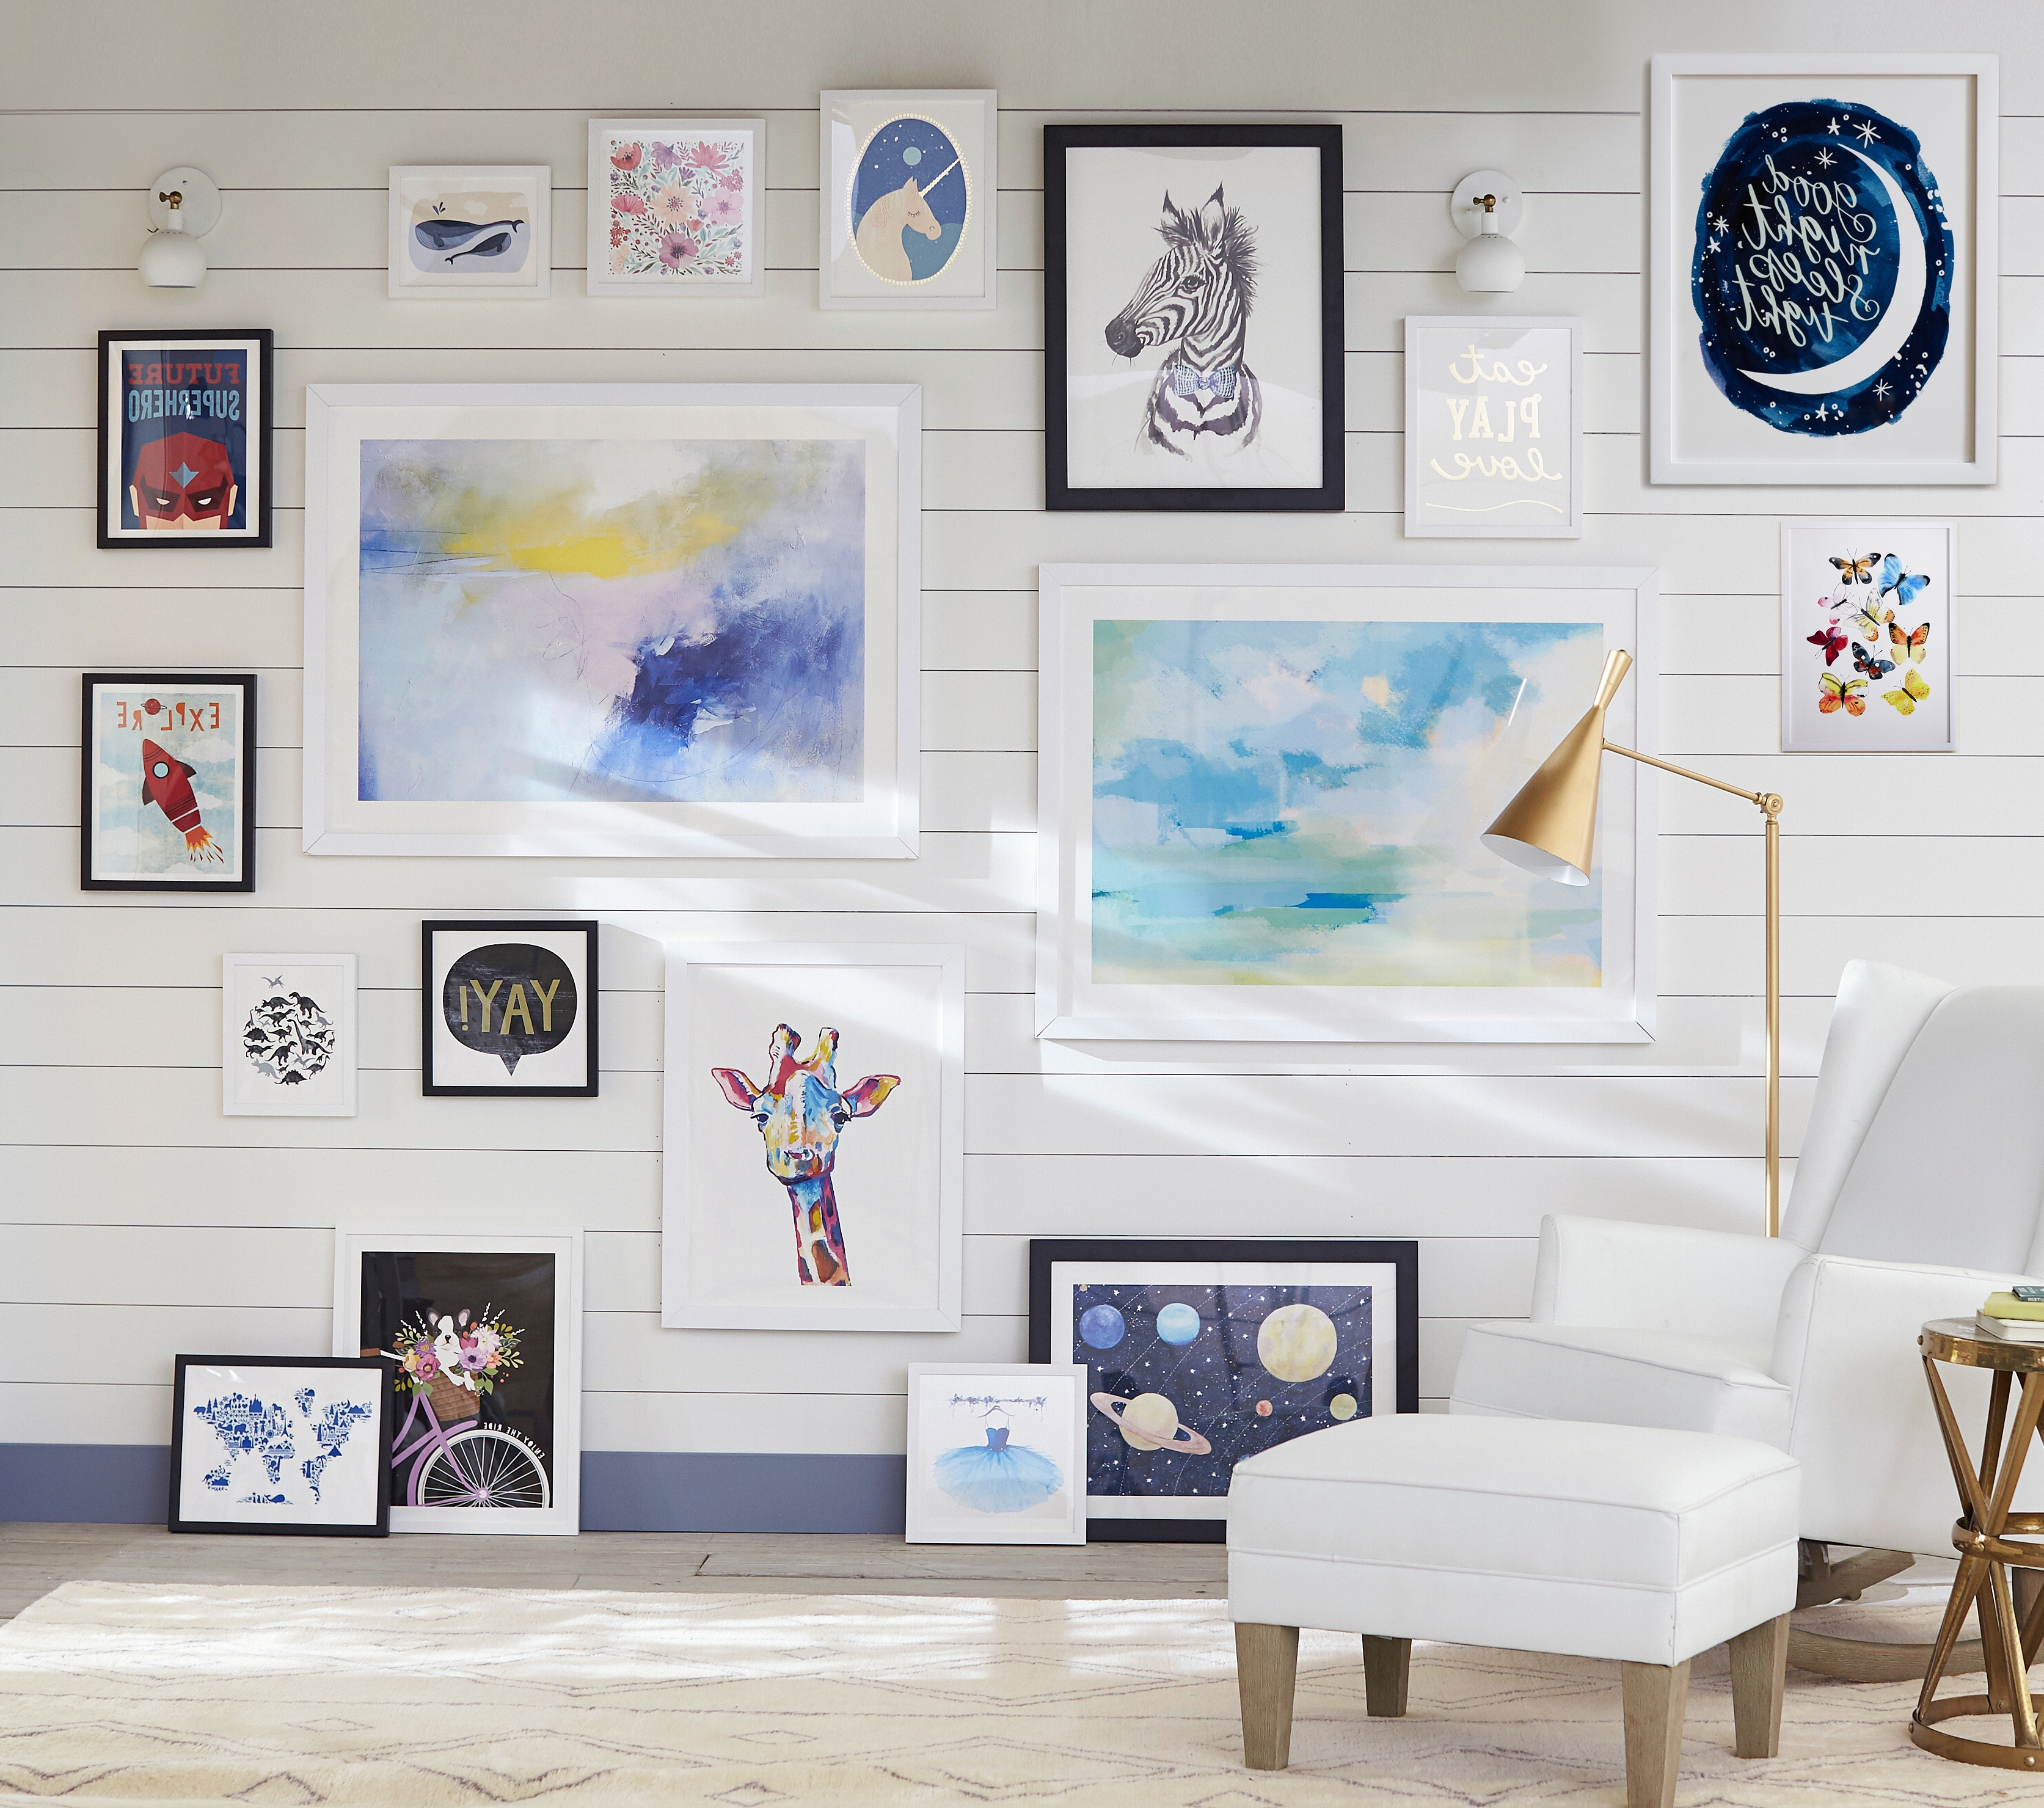 Best And Newest Pottery Barn Wall Art With Pottery Barn Kids And Pbteen Debut Exclusive Wall Art Collection (Gallery 6 of 15)